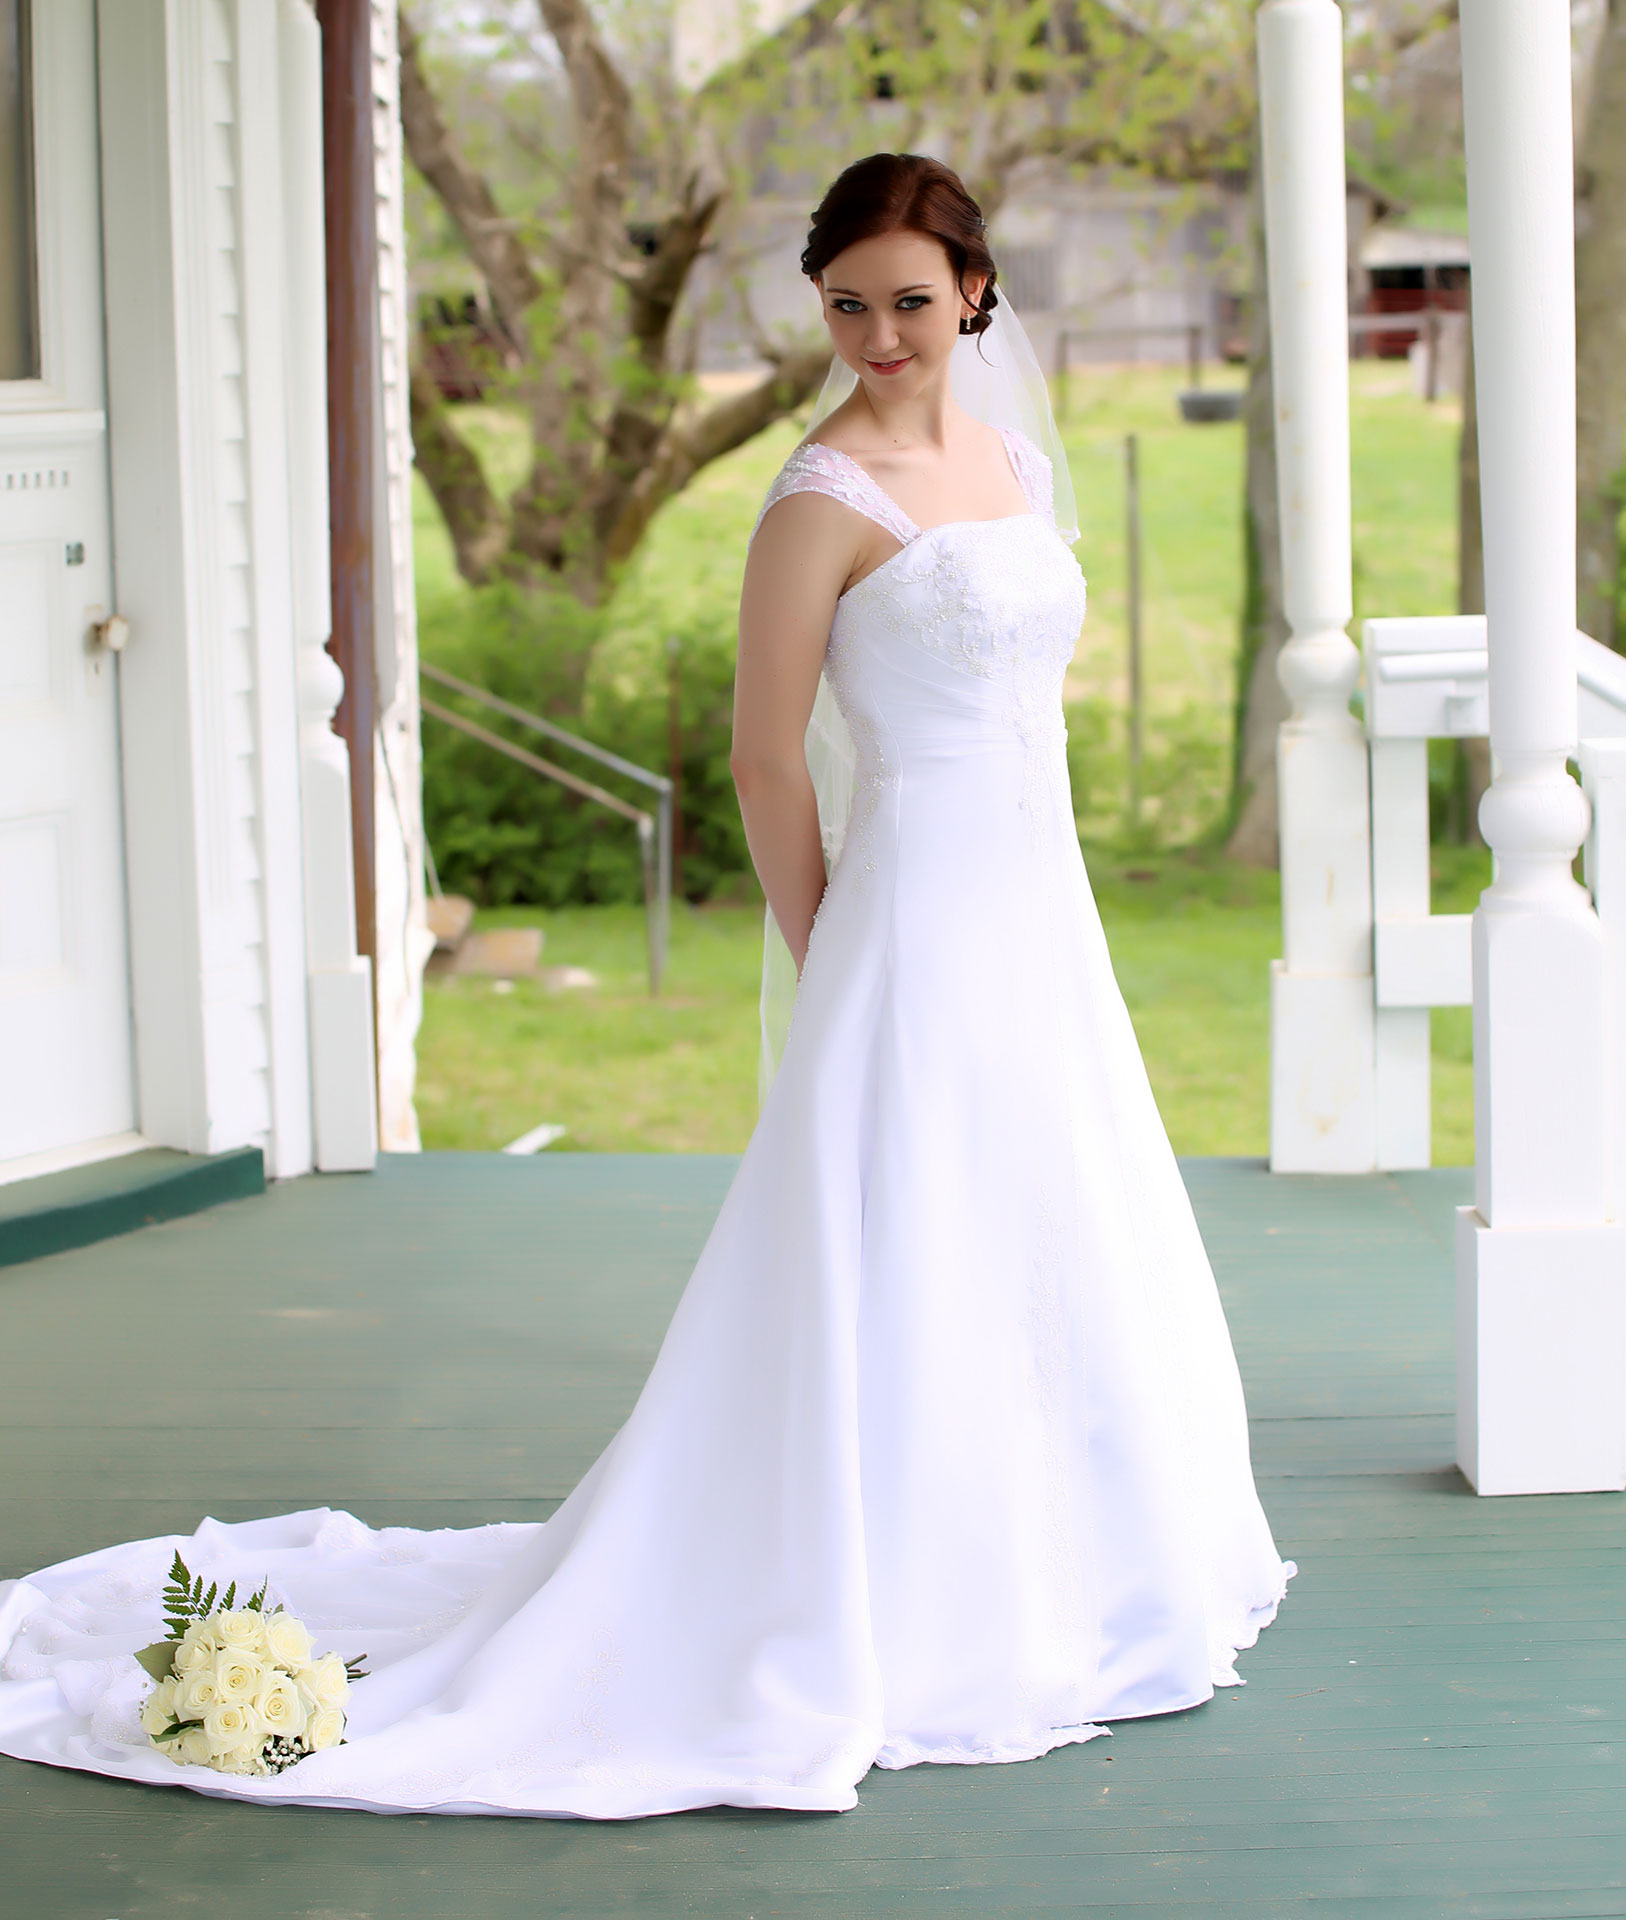 Remnant-Fellowship-Tran-Wedding-Dress